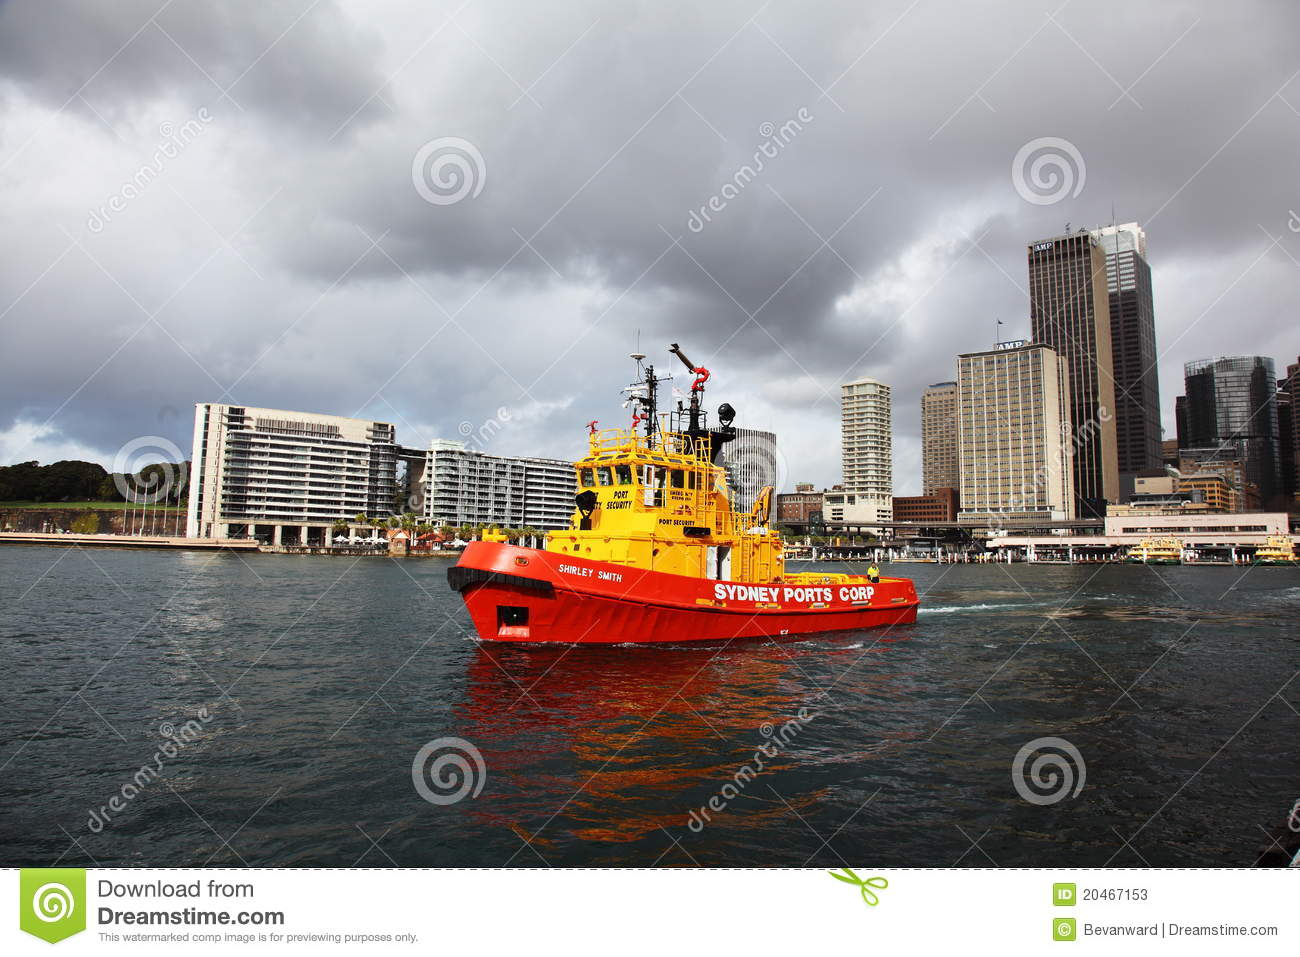 Red Tug Boat In Sydney Harbour Editorial Stock Photo - Image